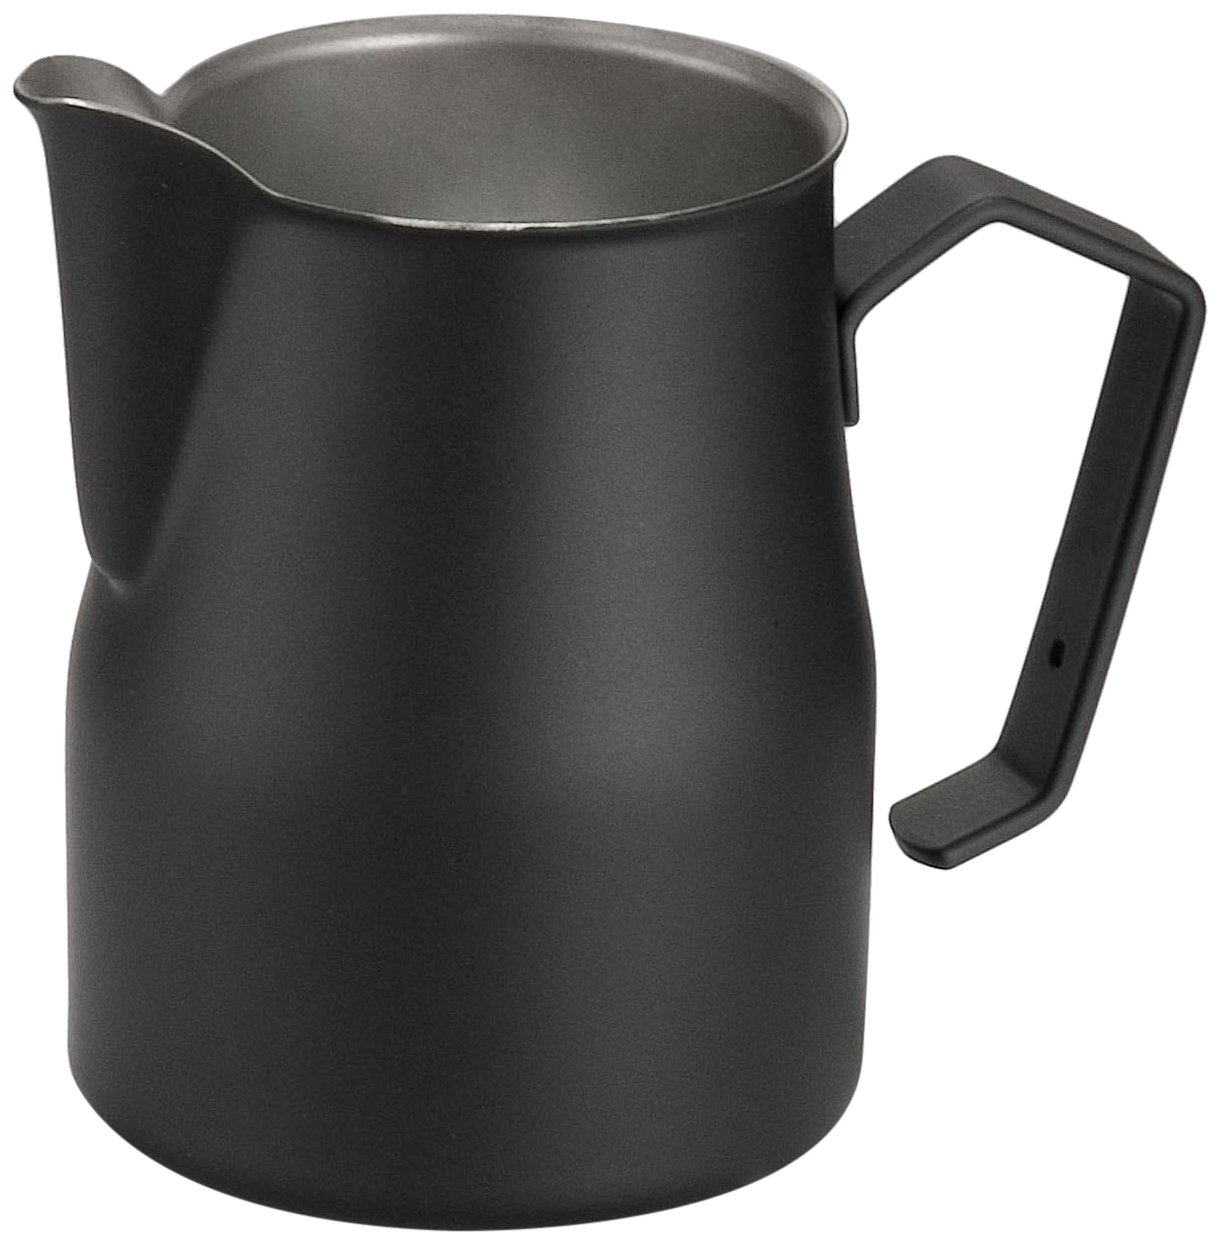 Motta Stainless Steel Professional Milk Pitcher/Jugs, 11.8 Fluid Ounce, Black